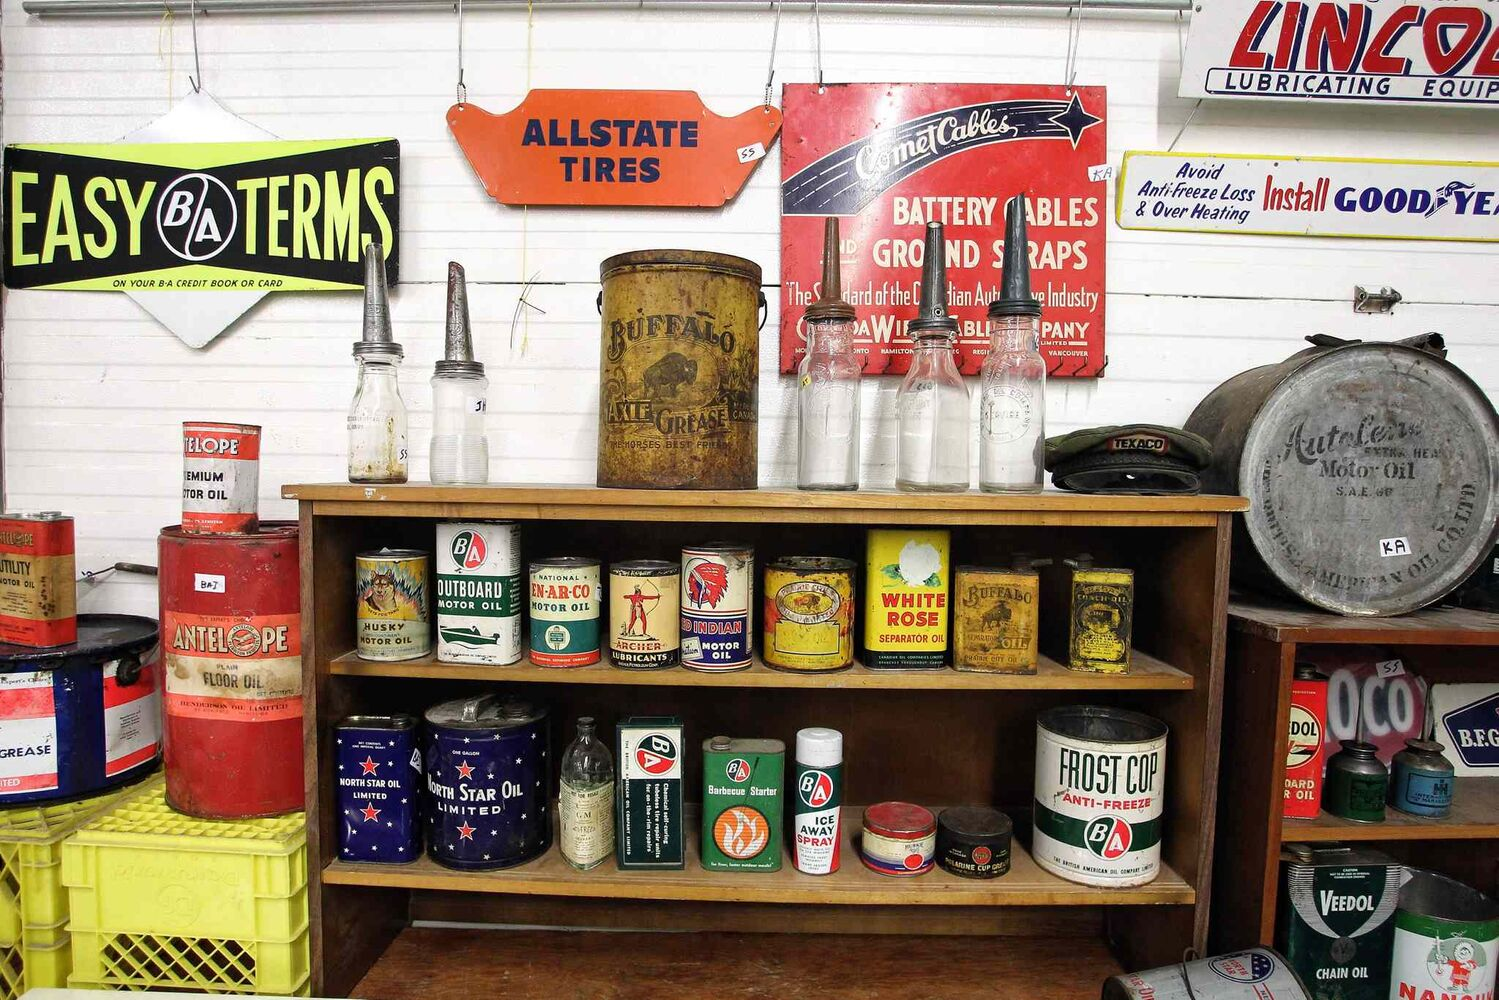 Old canisters of motor oil, axle grease, antifreeze and more are included in the auction. (MIKE DEAL / WINNIPEG FREE PRESS)